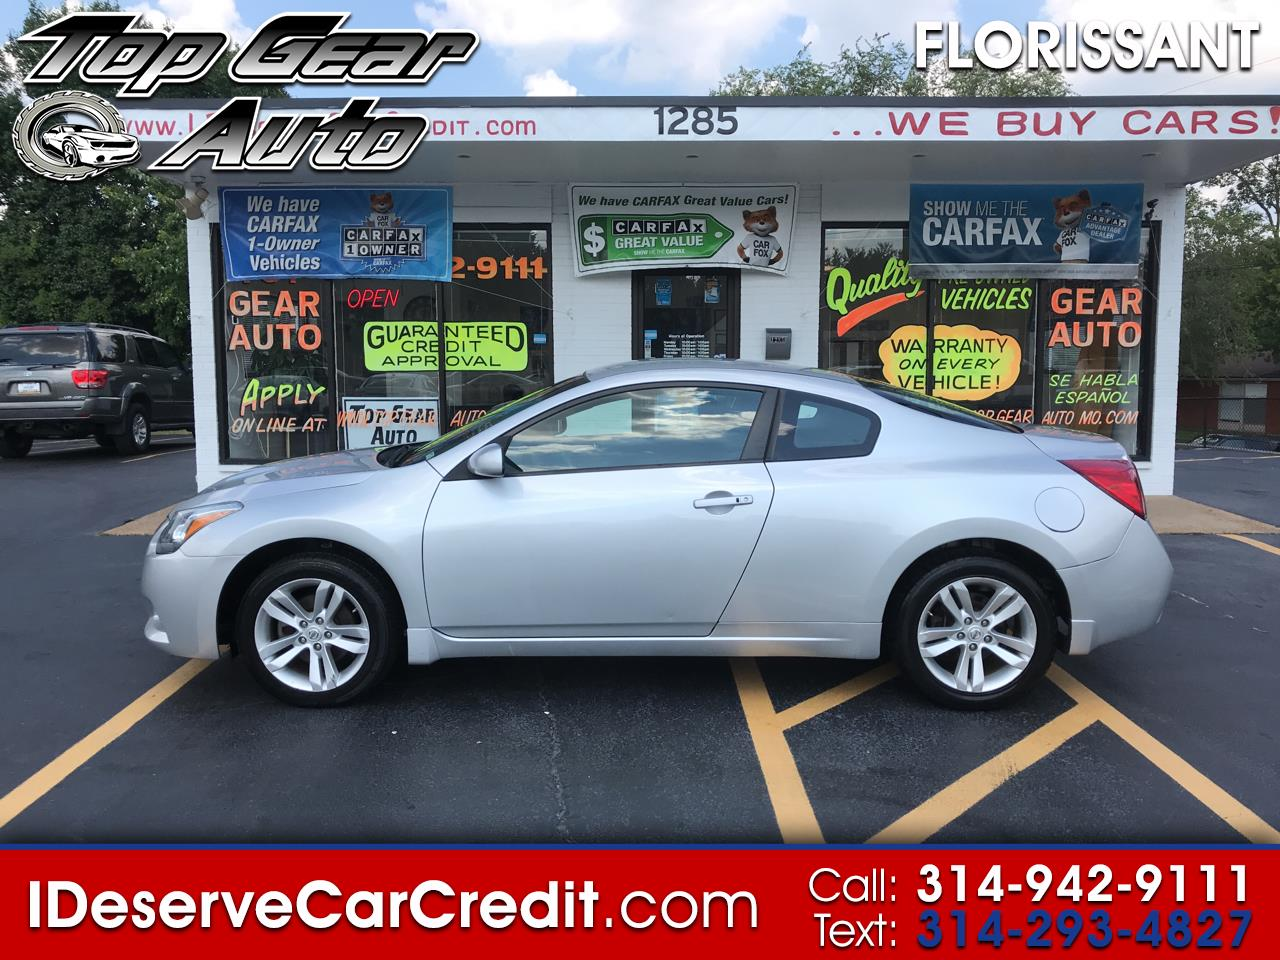 2013 Nissan Altima 2dr Cpe I4 2.5 S